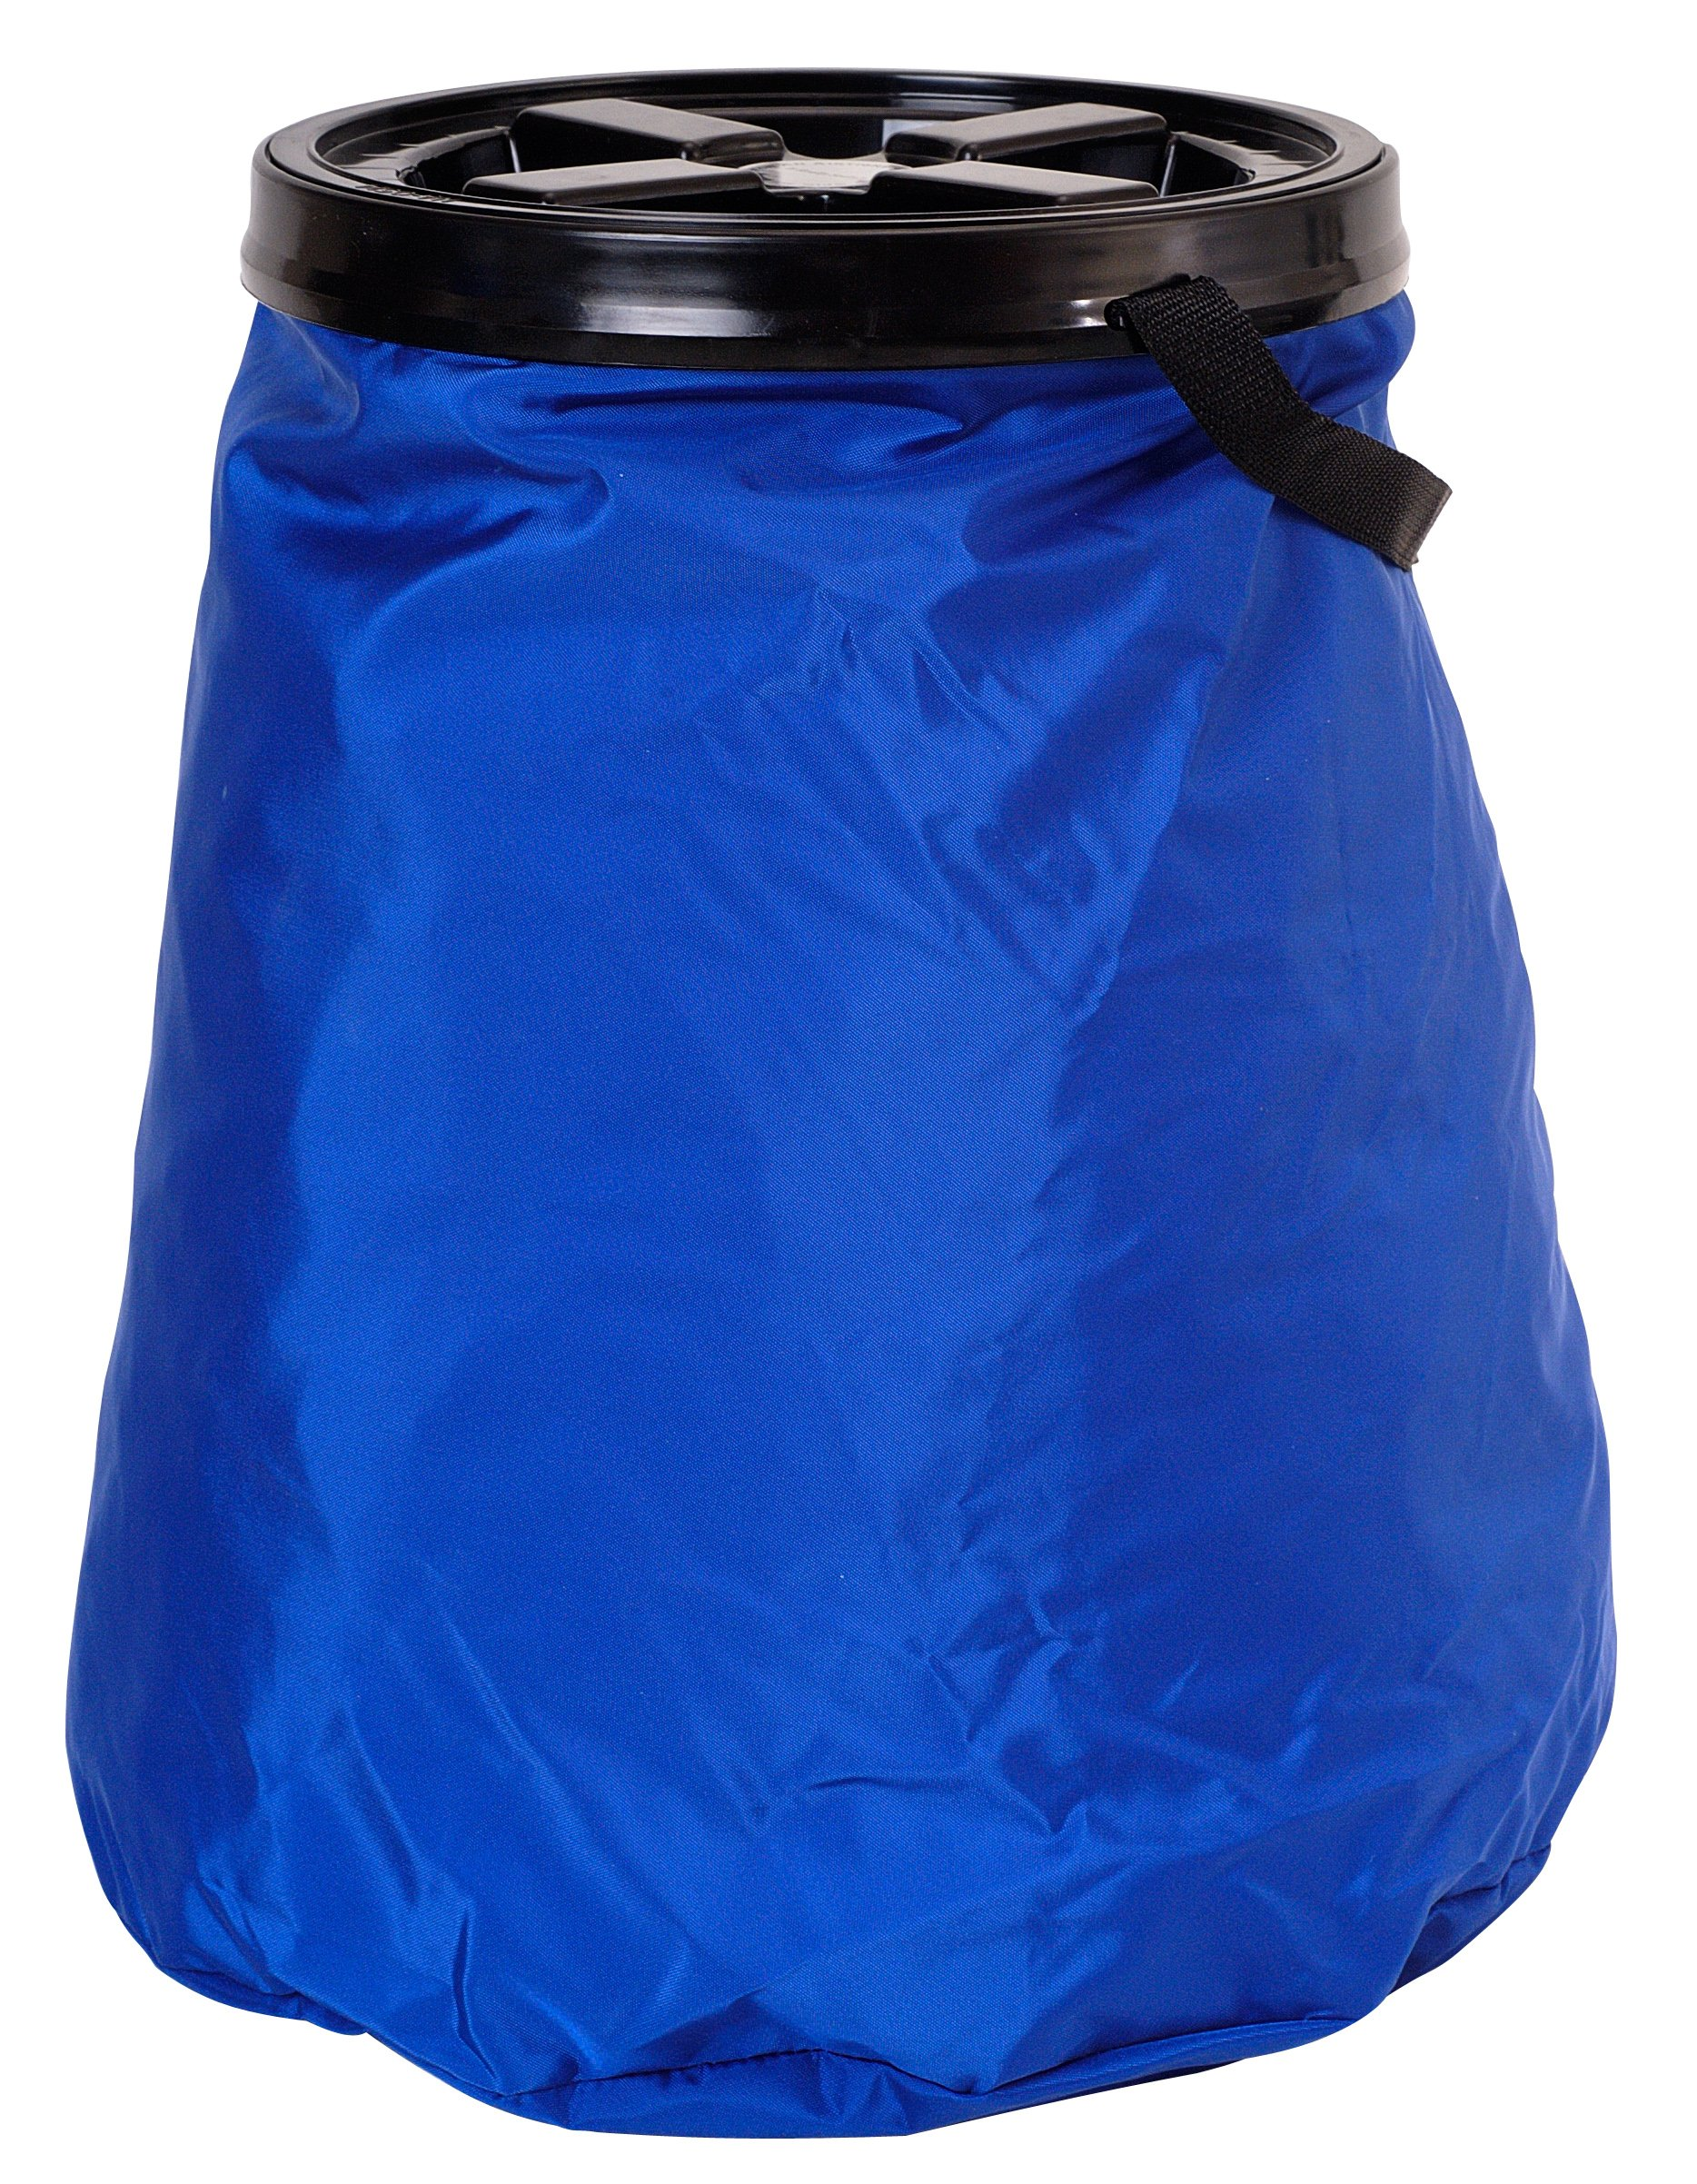 Vittles Vault SoftStore Collapsible, Airtight Pet Food Container 50 Pound Capacity, Blue